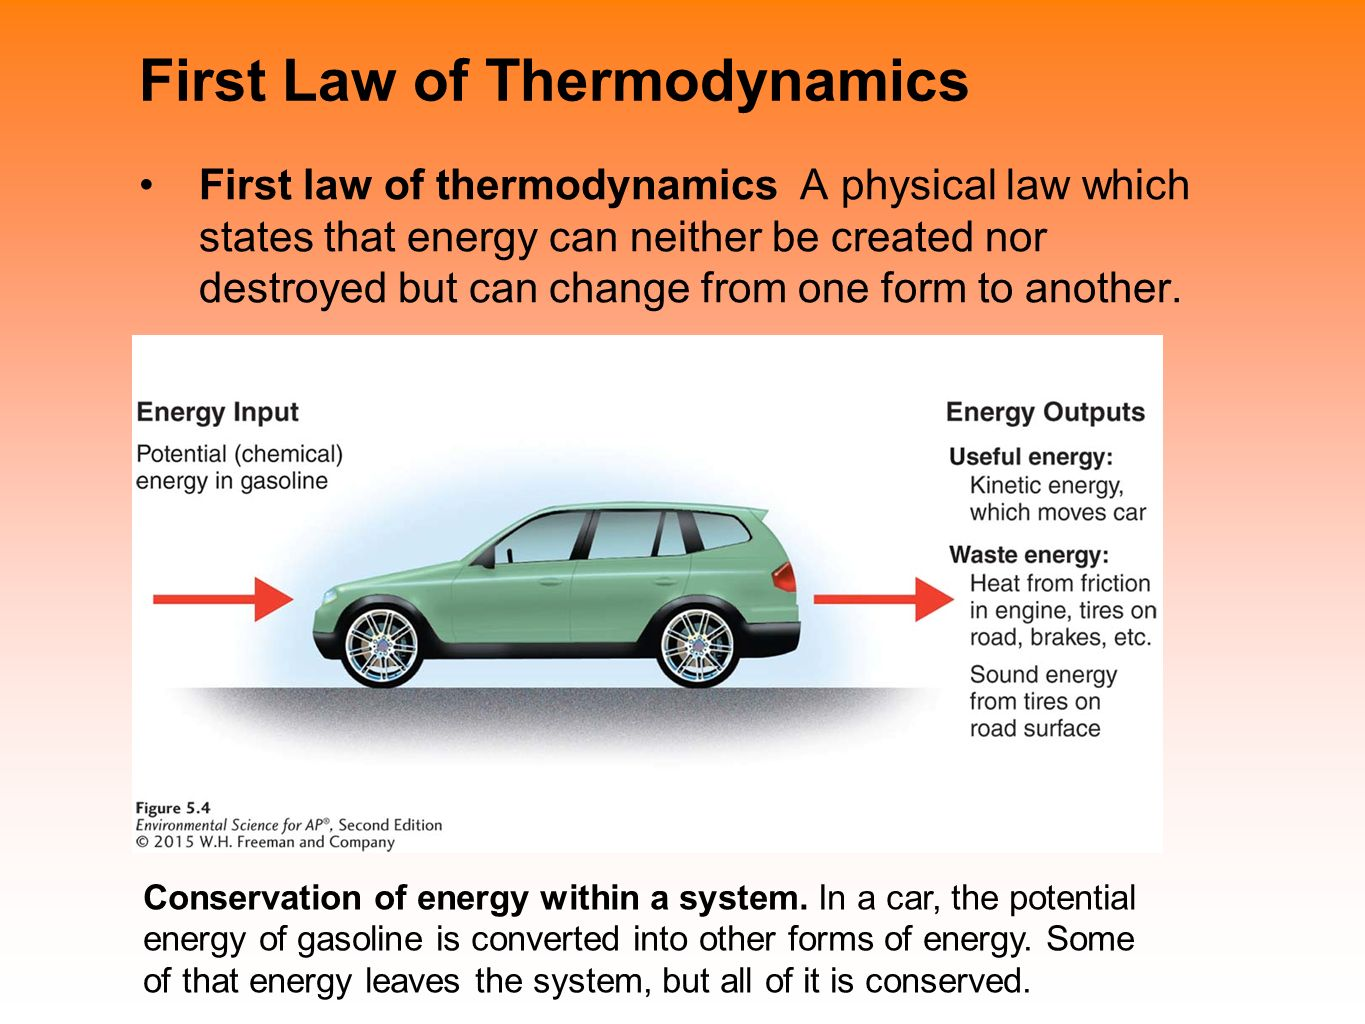 the first law of thermodynamics essay View essay - bookassignmentforchapter4dhitalk_141010 from science 112-04  at harrisburg  keshav dhital 1) does the first law of thermodynamic imply a.